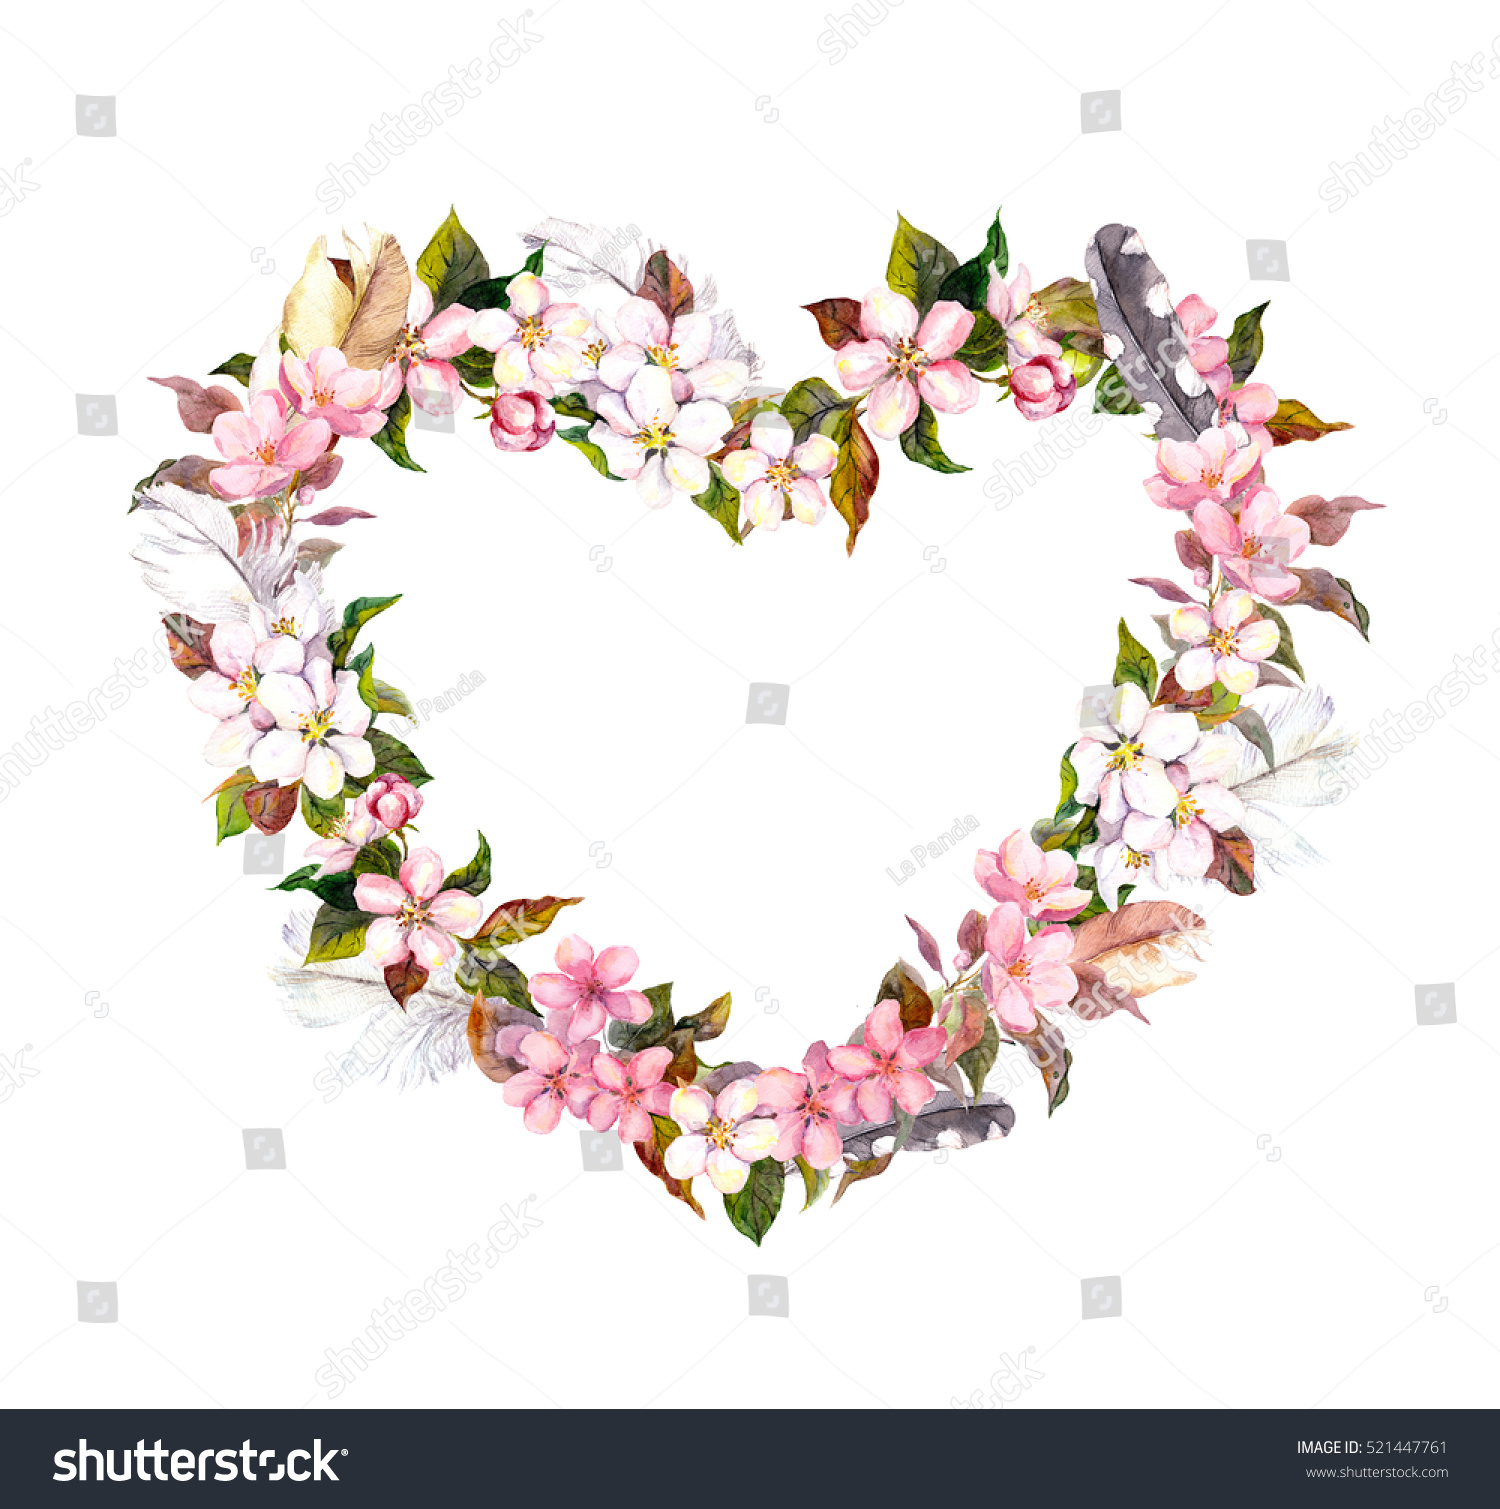 Floral wreath heart shape pink flowers stock illustration 521447761 floral wreath heart shape pink flowers and feathers watercolor heart for valentine day mightylinksfo